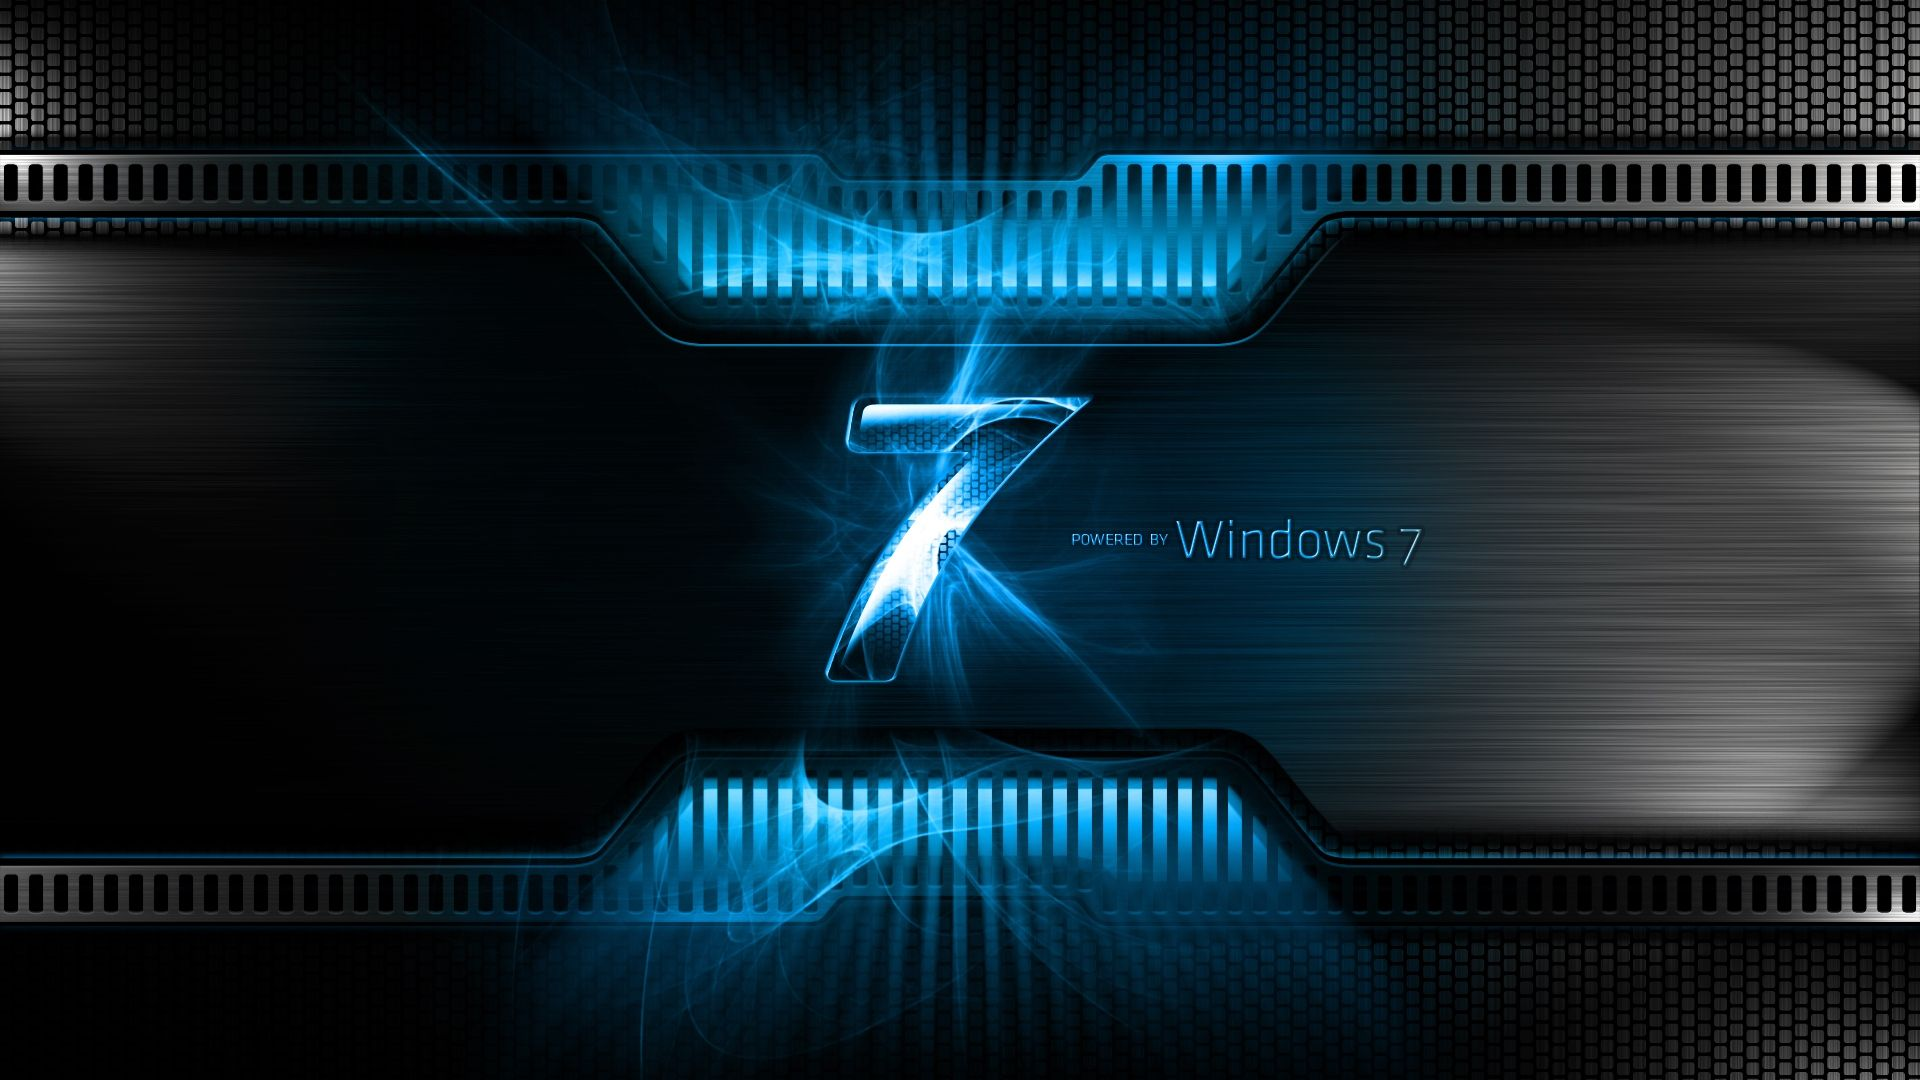 download wallpaper 1920x1080 windows 7, blue, black, logo, light